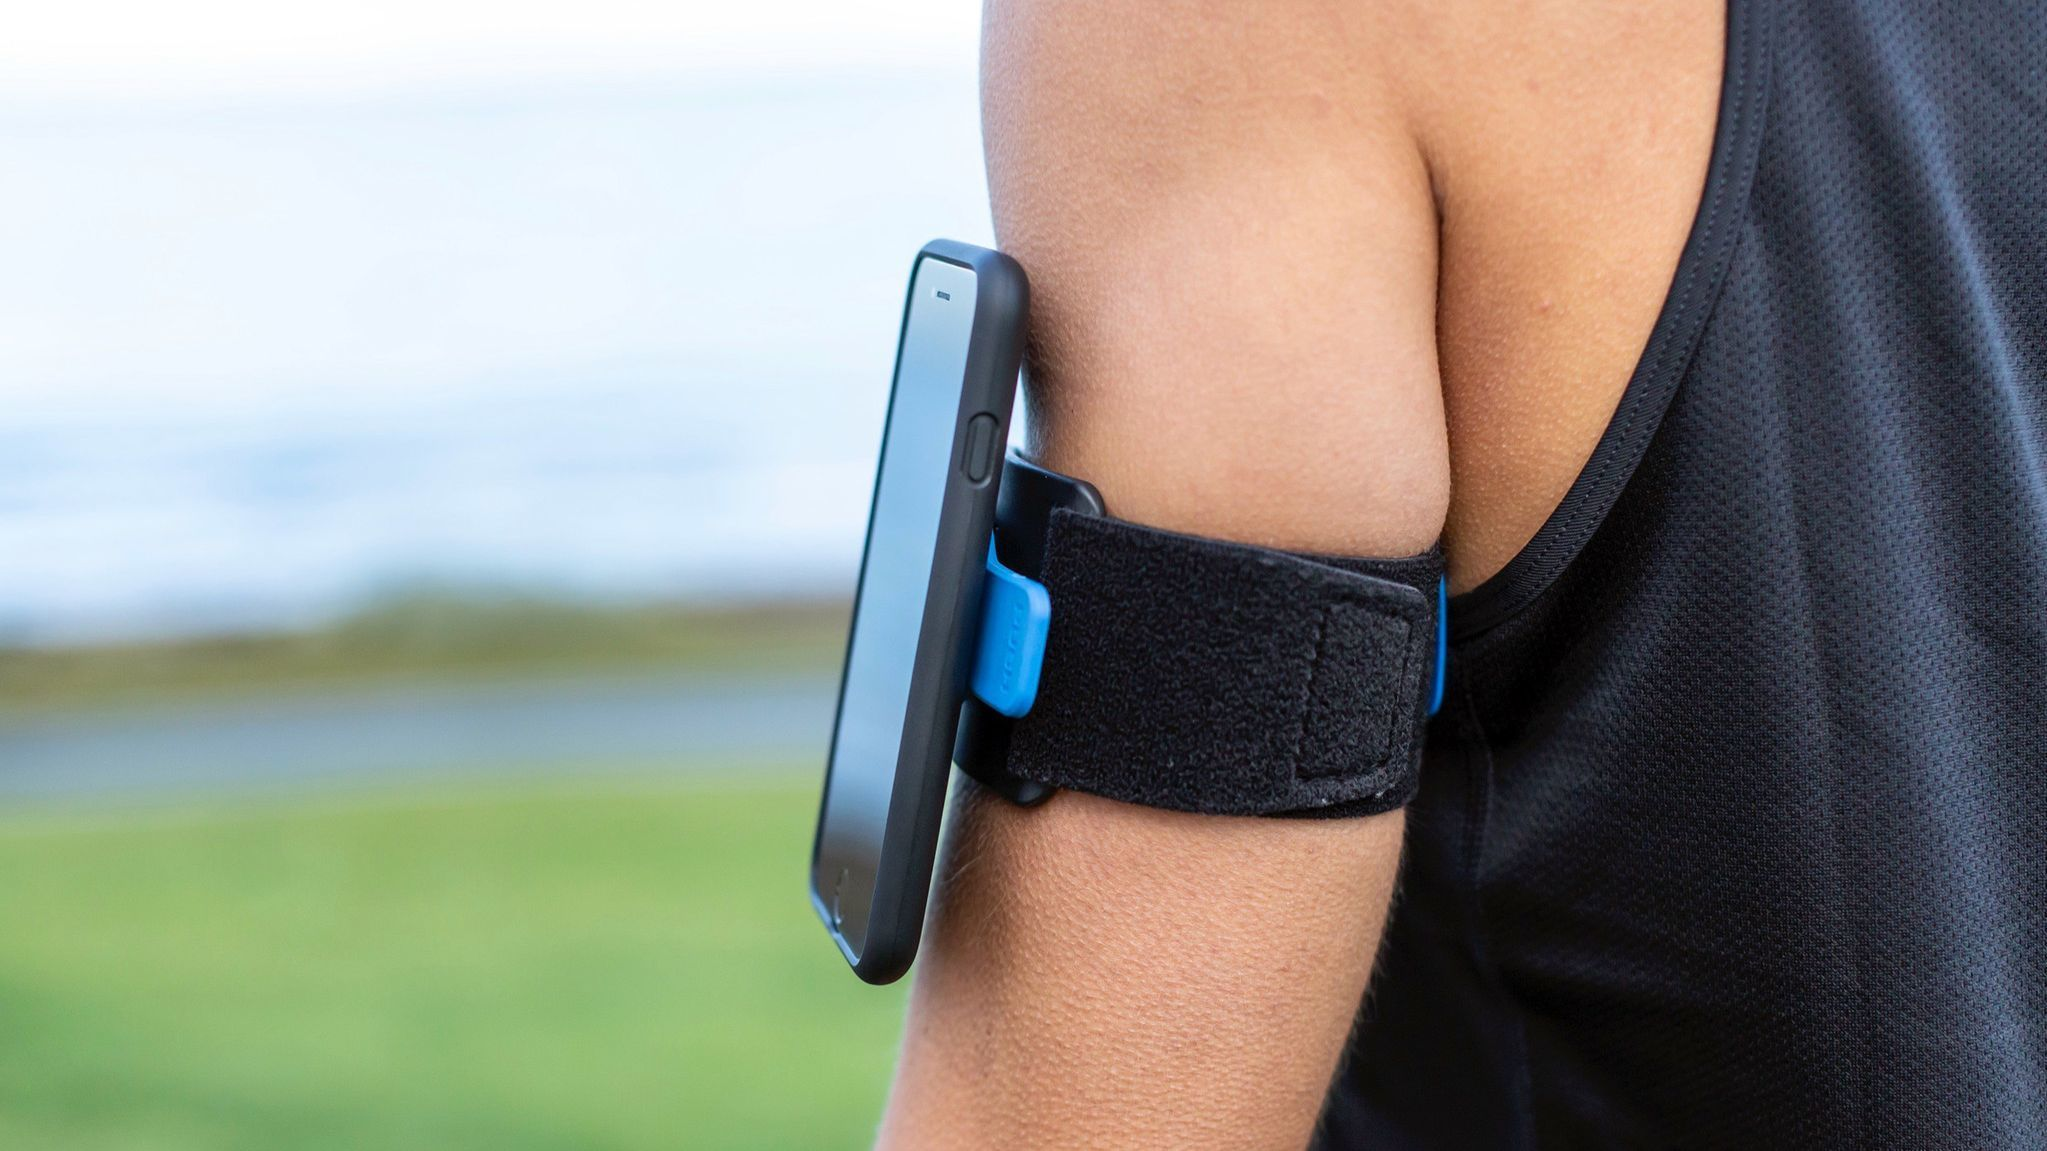 HEADLINE: Insta-Phone PRODUCT NAME AND DESCRIPTION: Quad Lock? Sports Armband. A Velcro band with a